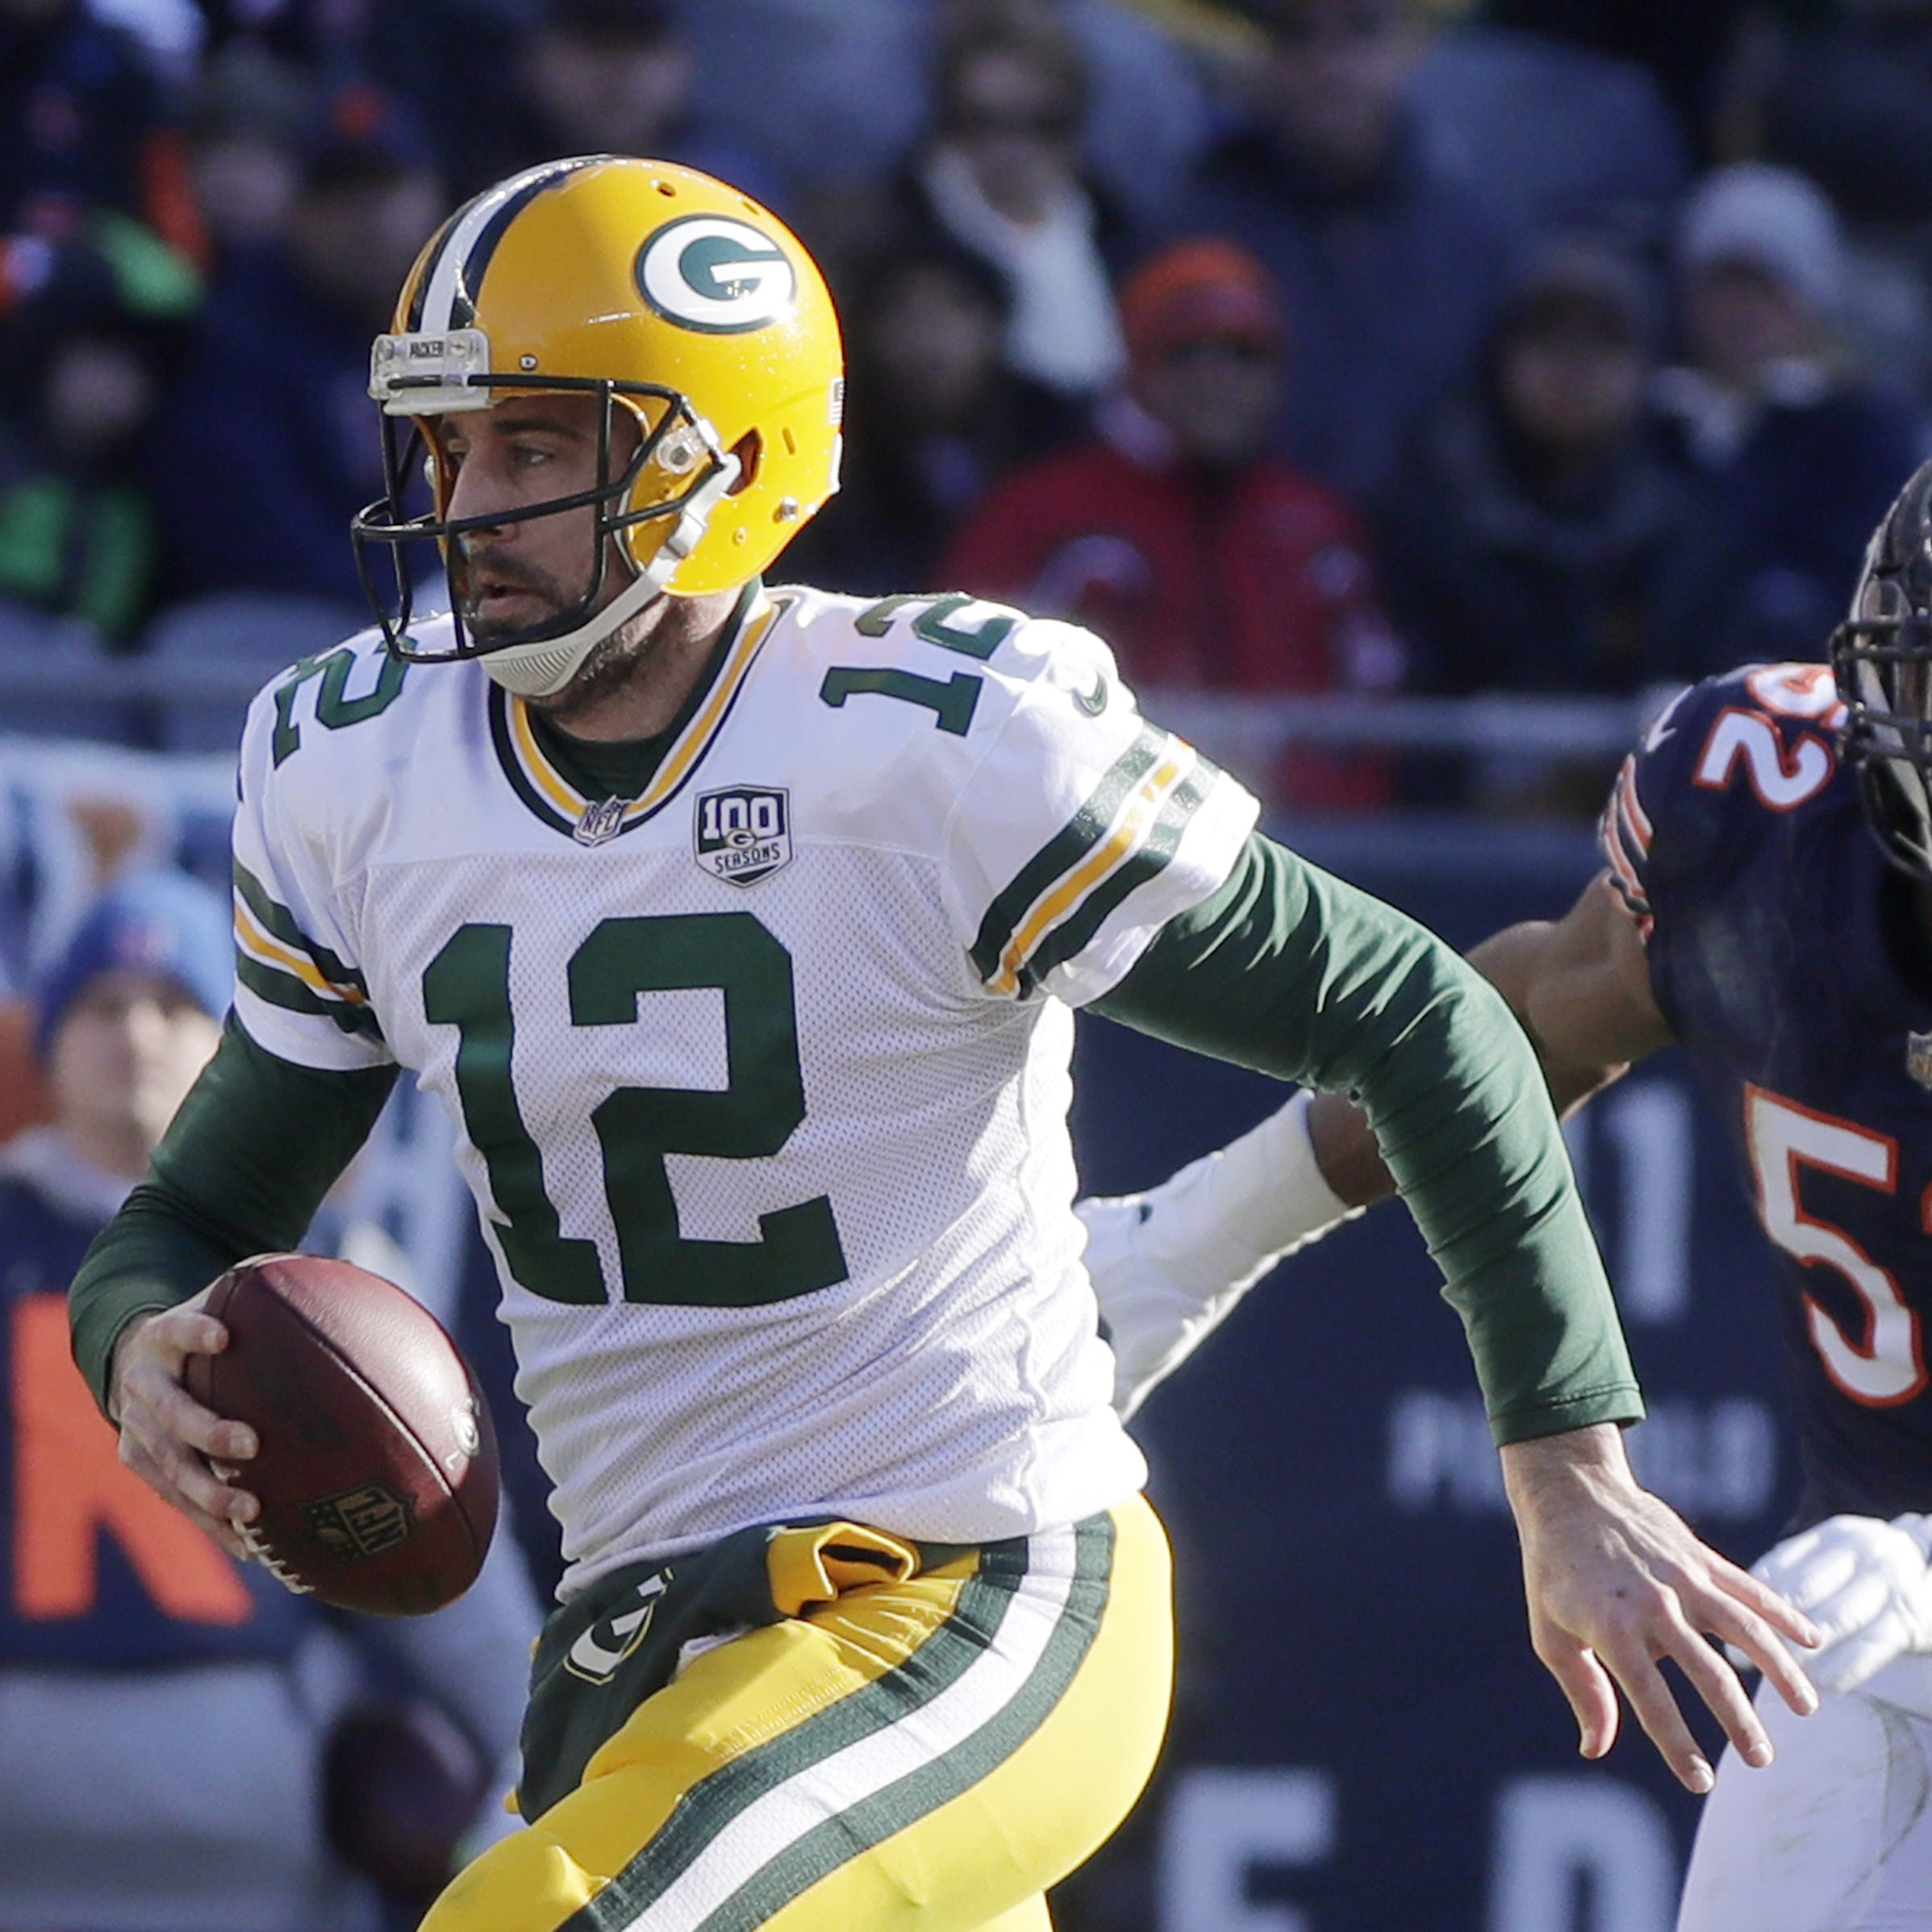 Packers to open NFL's 100th season in Thursday night game vs. Bears at Soldier Field